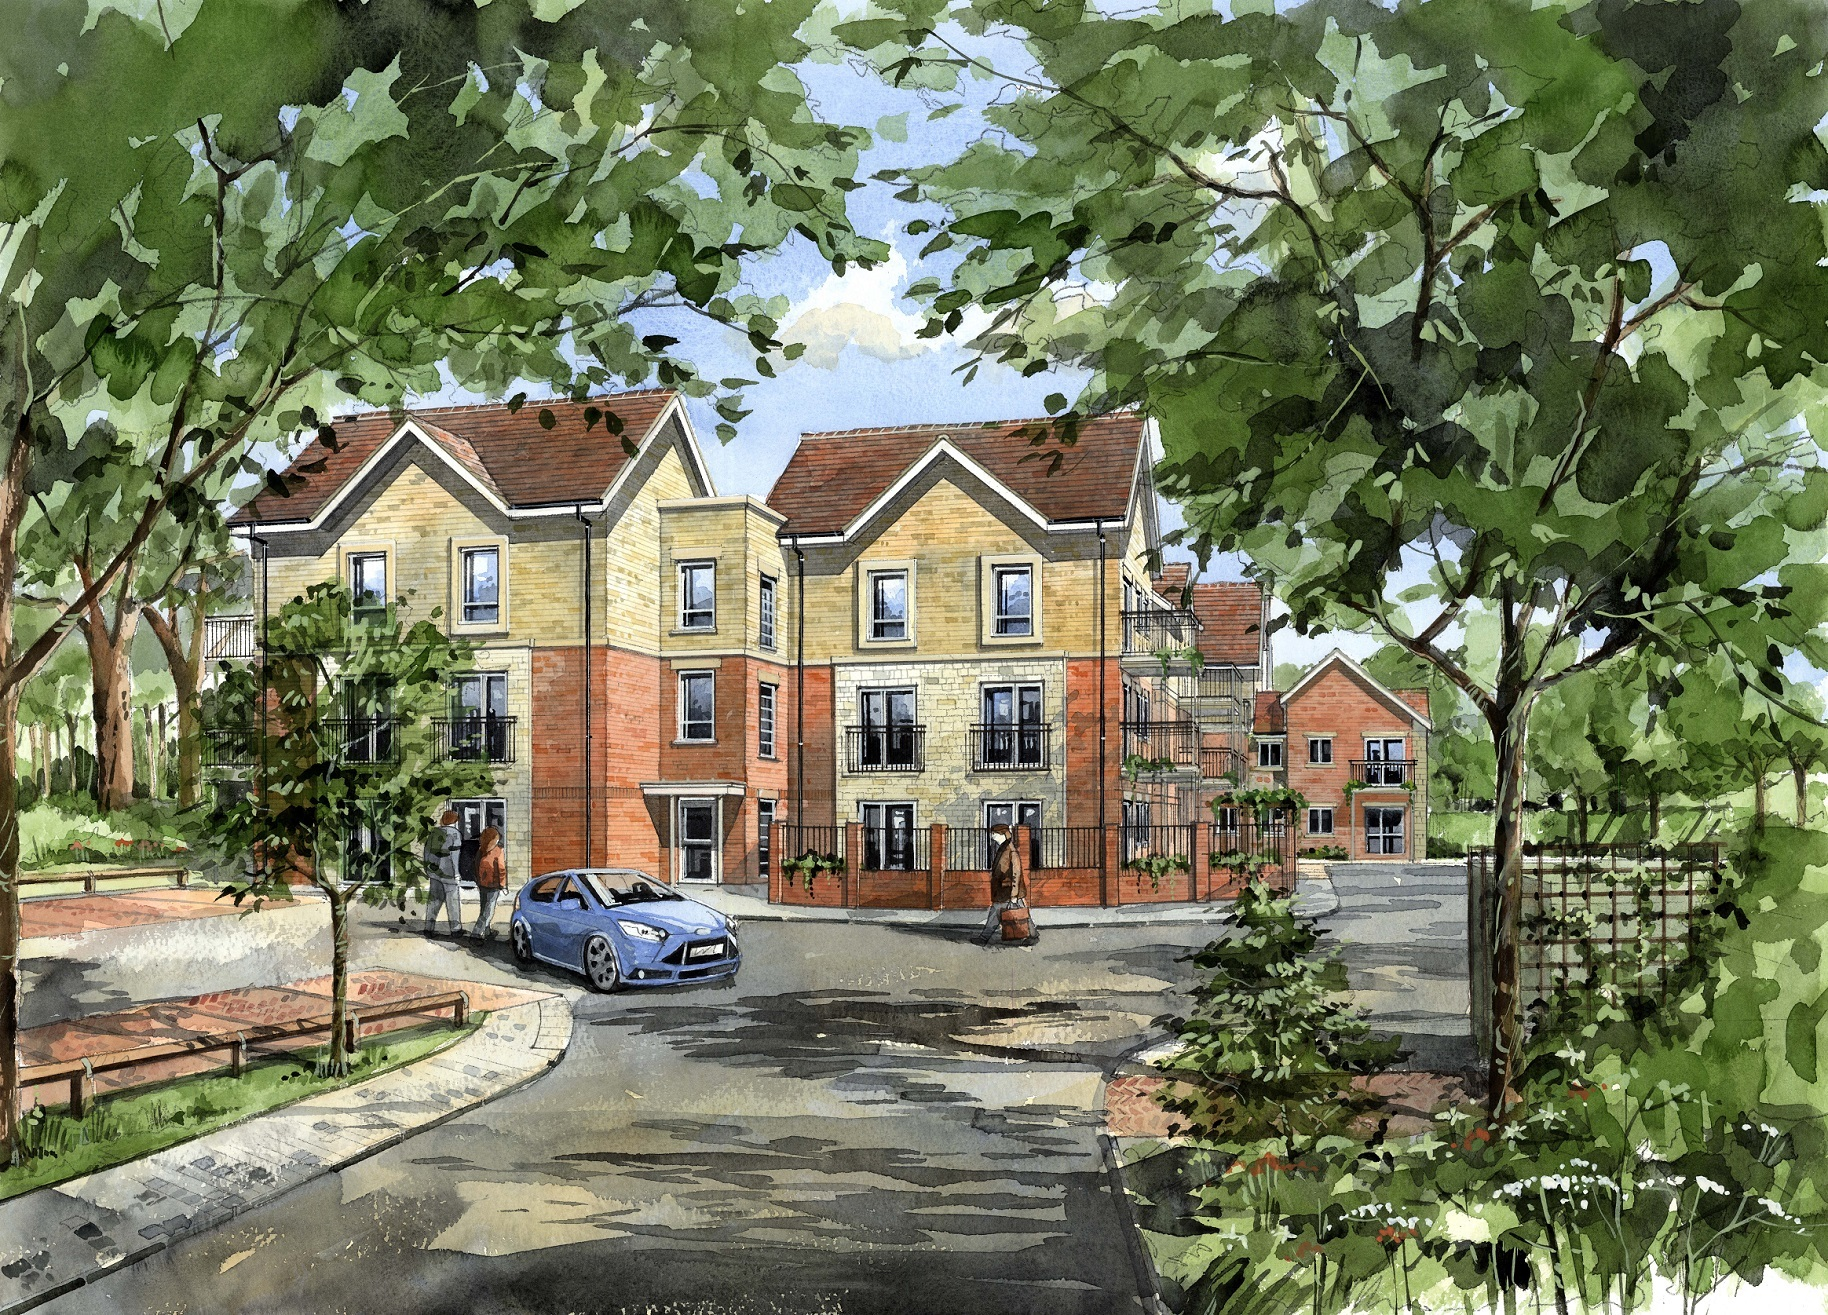 An artist's impression of how the new McCarthy & Stone retirement apartments in Wroughton might look on completion.